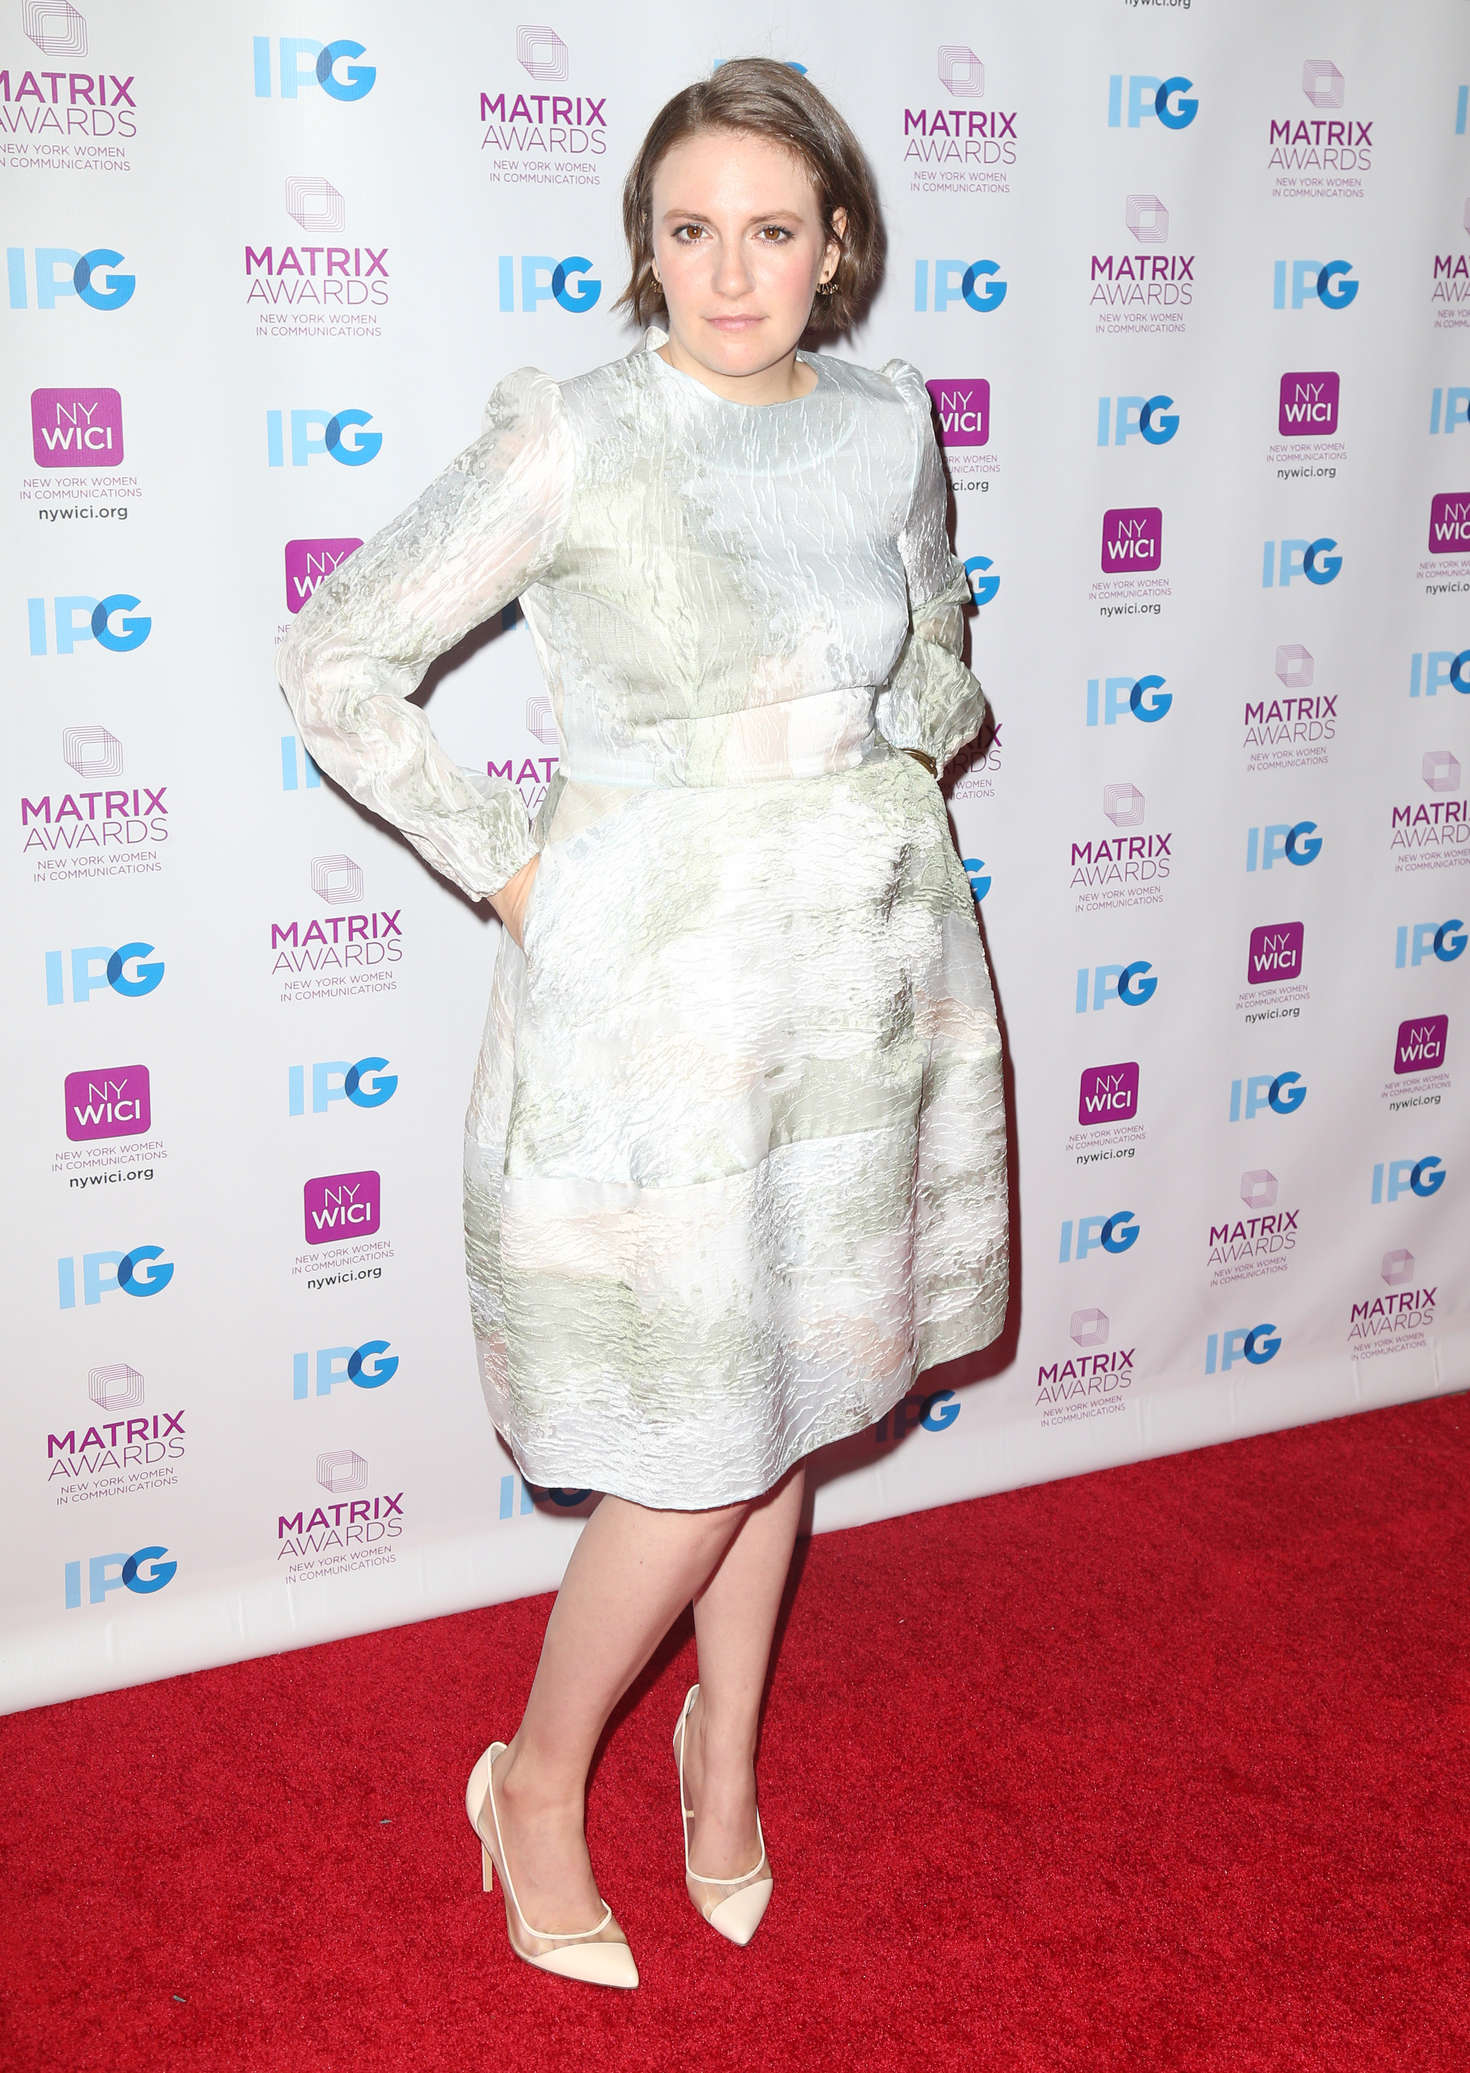 Lena Dunham Matrix Awards in New York